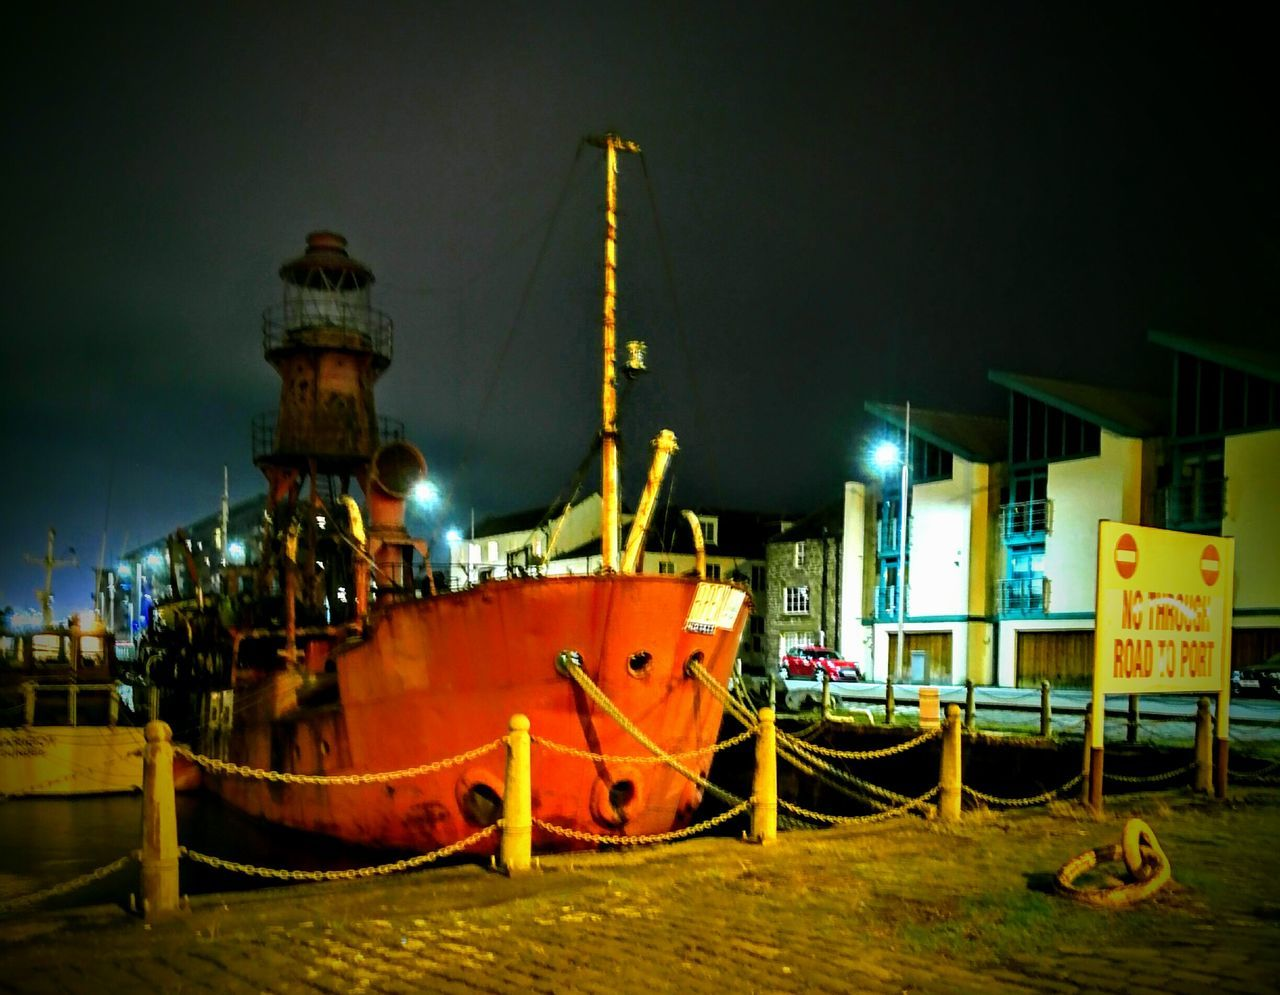 Night Illuminated Outdoors Design Textured  Metal Built Structure Architecture Dundee Mode Of Transport Transportation Development Light House Boat decommissioned